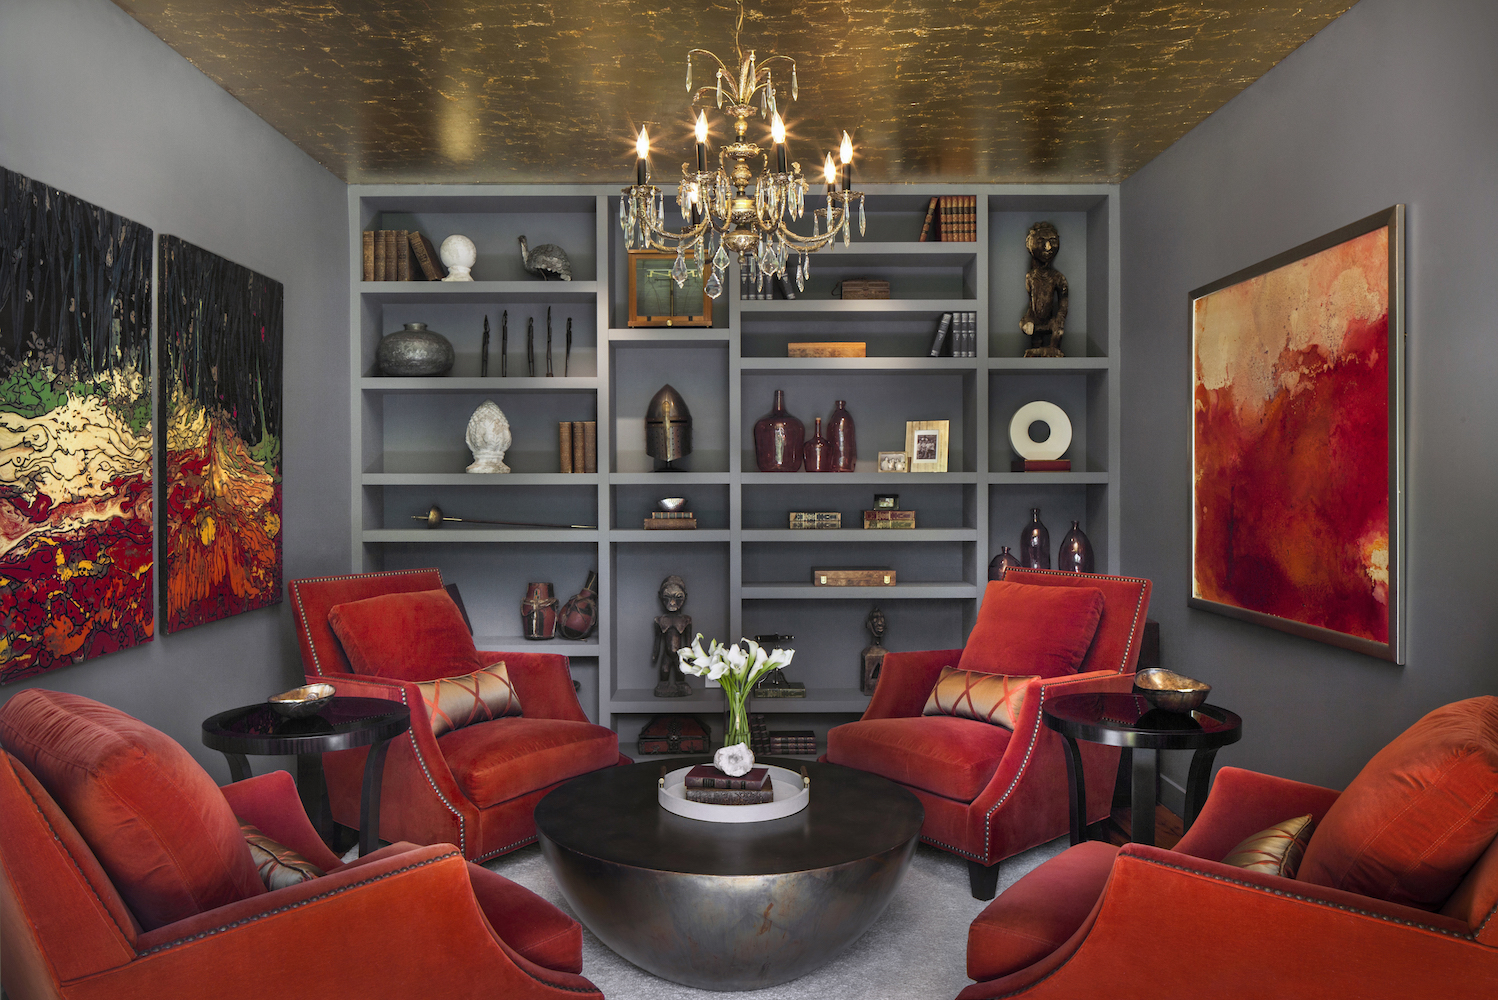 décor aid's color selections for 2017 | huffpost